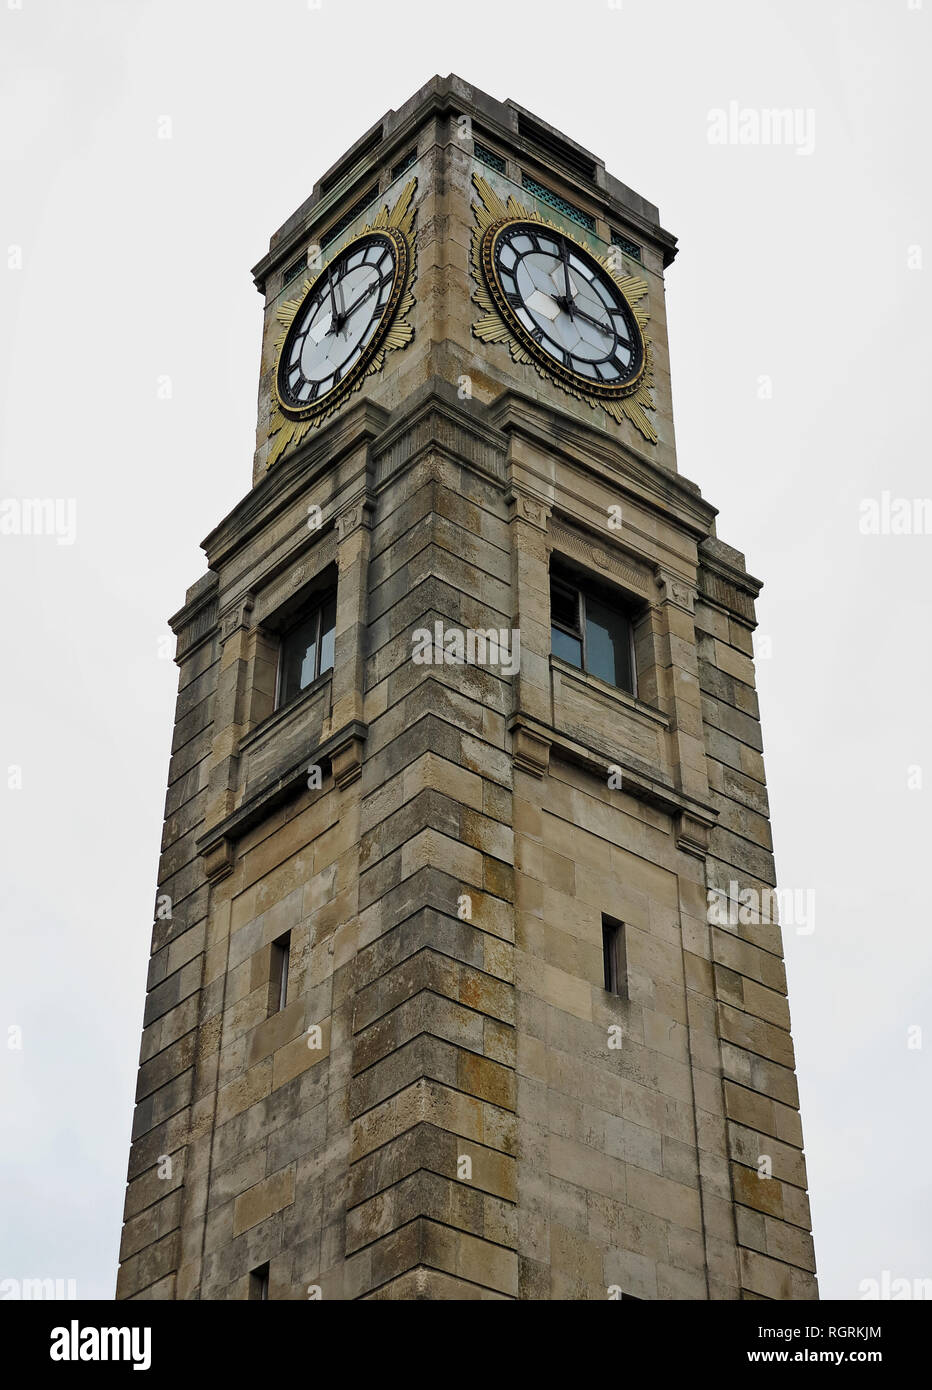 Looking up at the clock tower in Stanley Park, Blackpool, UK Stock Photo